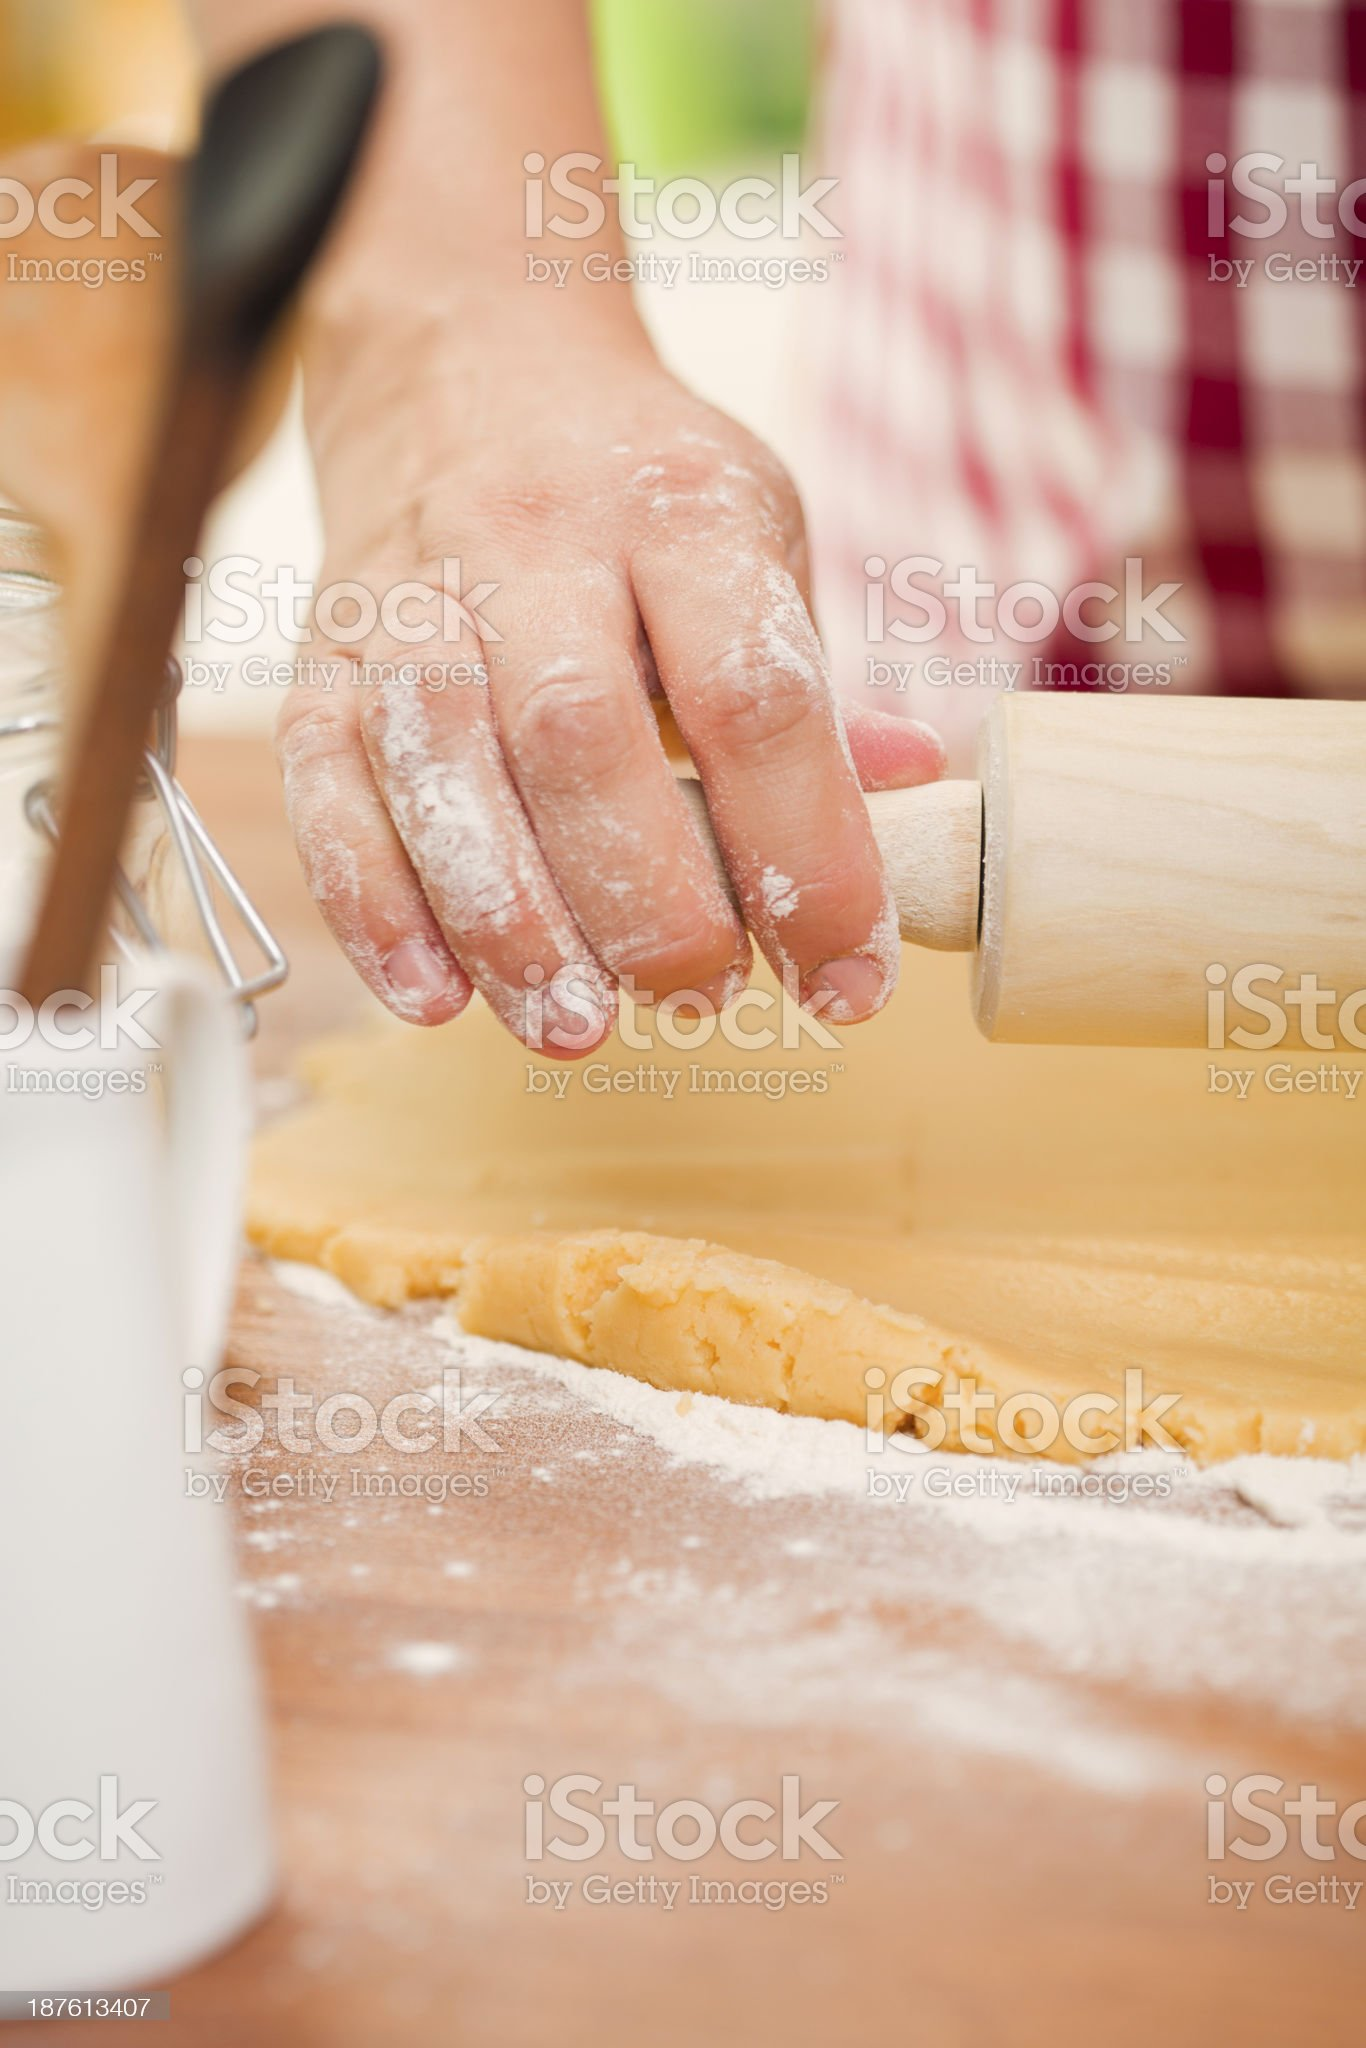 Kneading Dough royalty-free stock photo